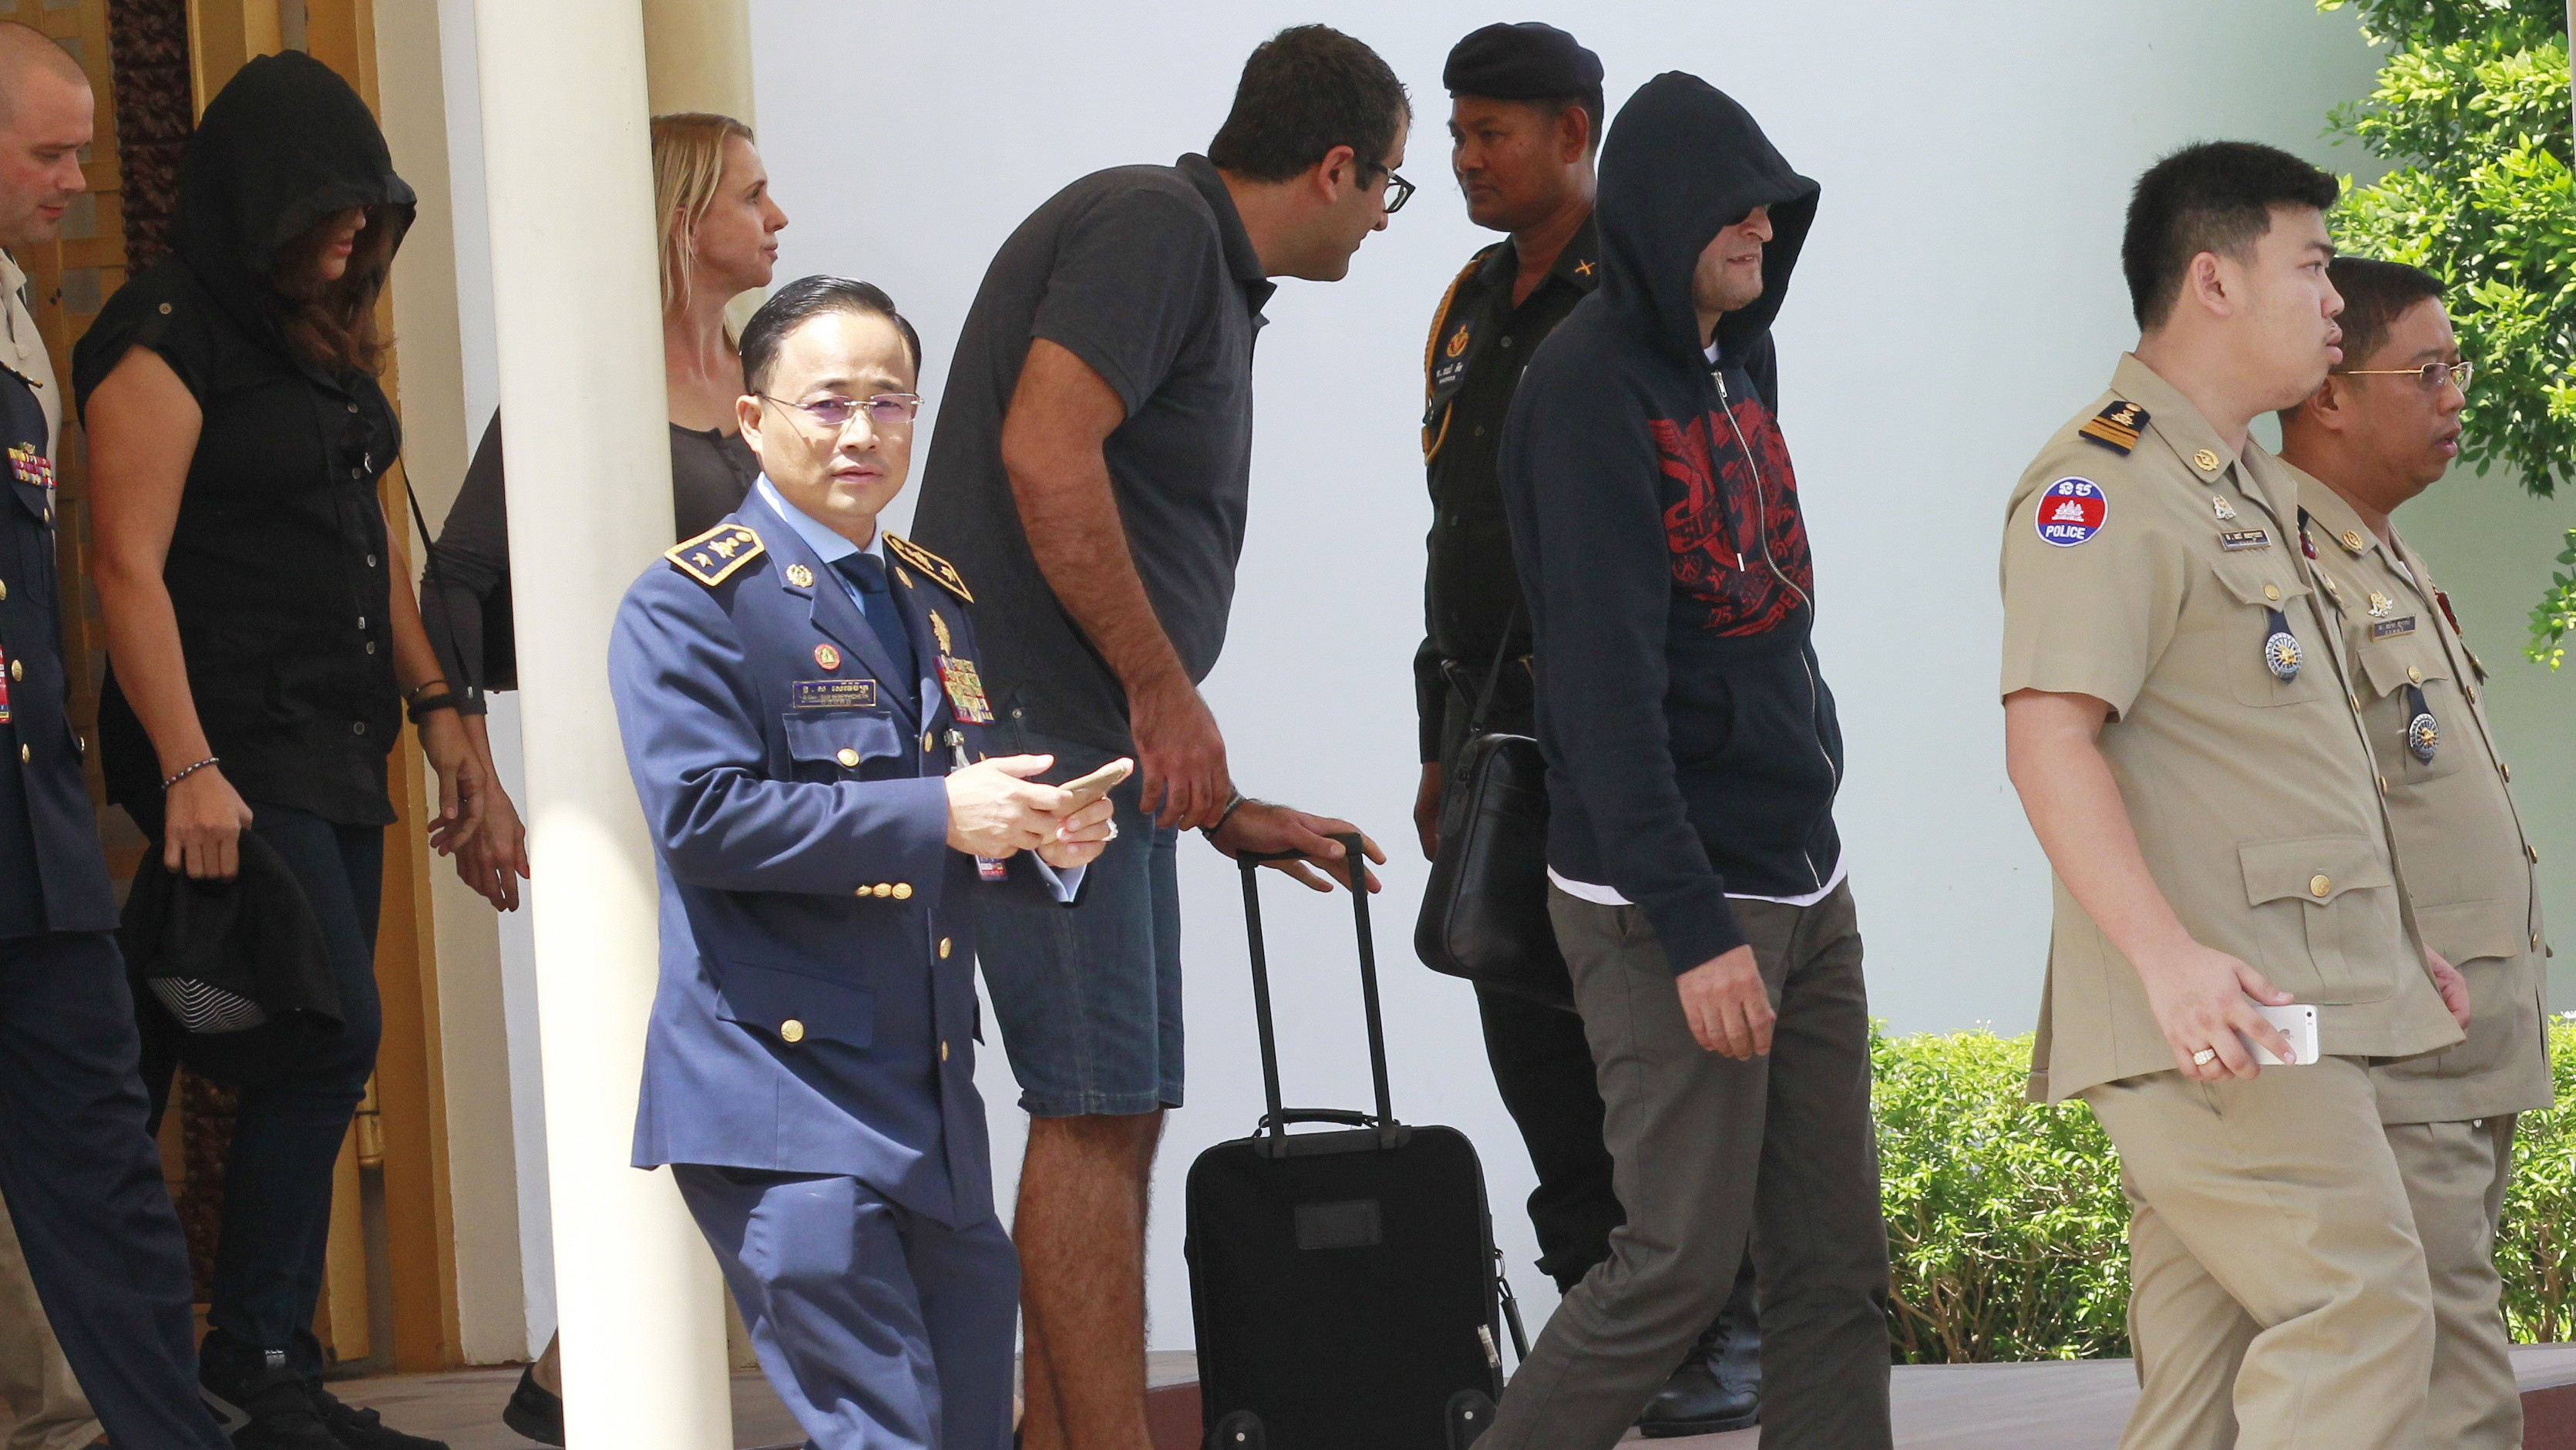 'Trading Refugees for Money': Four of Australia's Failed Asylum Seekers Arrive in Phnom Penh